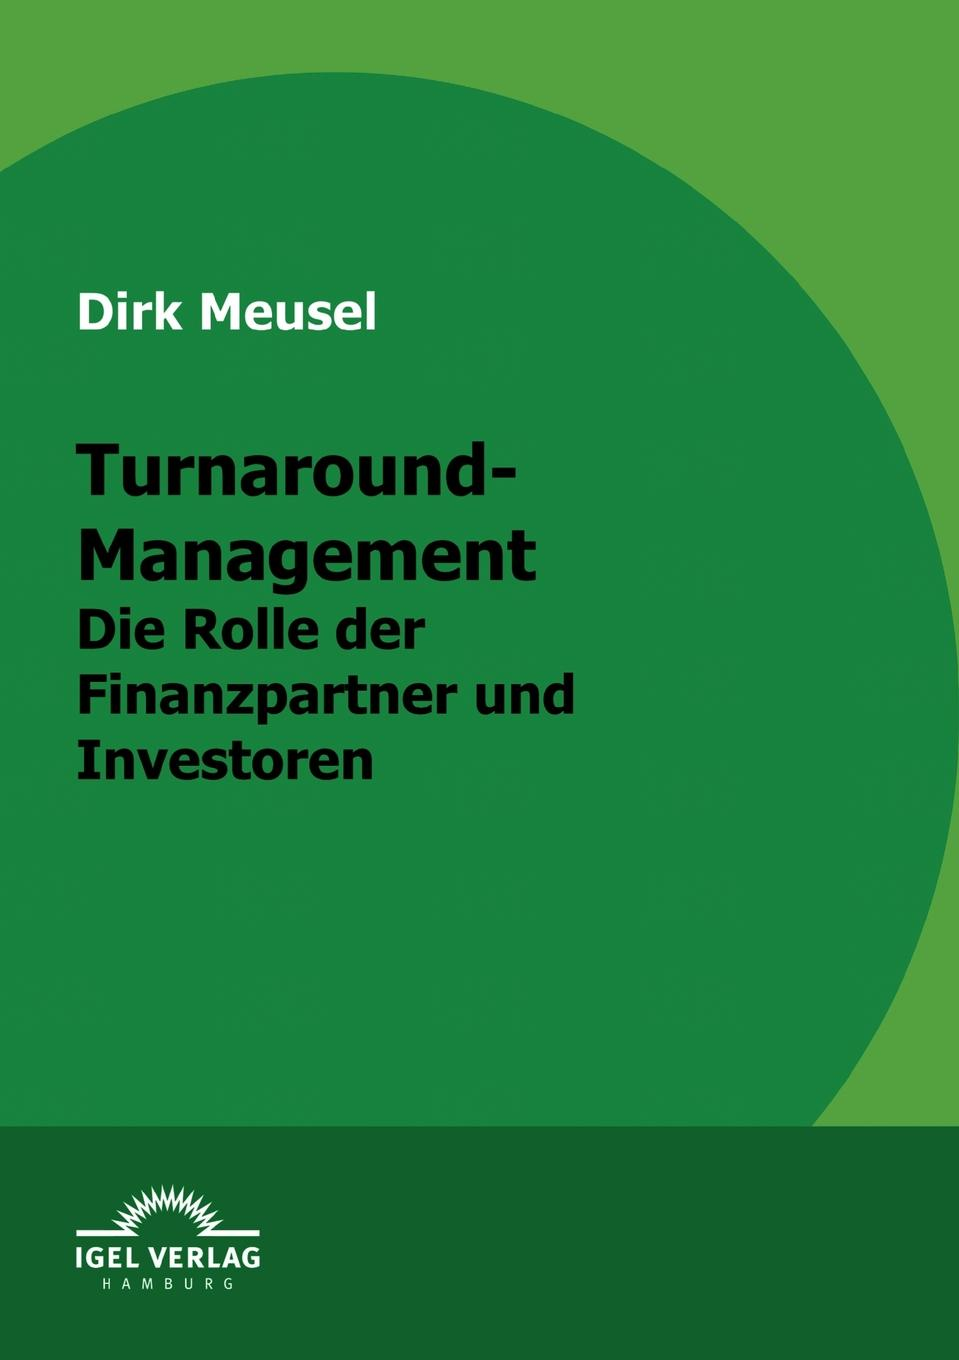 Dirk Meusel Turnaround-Management dirk drenk medienstadte in deutschland standortanforderungen fur medienstadte der film und fernsehwirtschaft